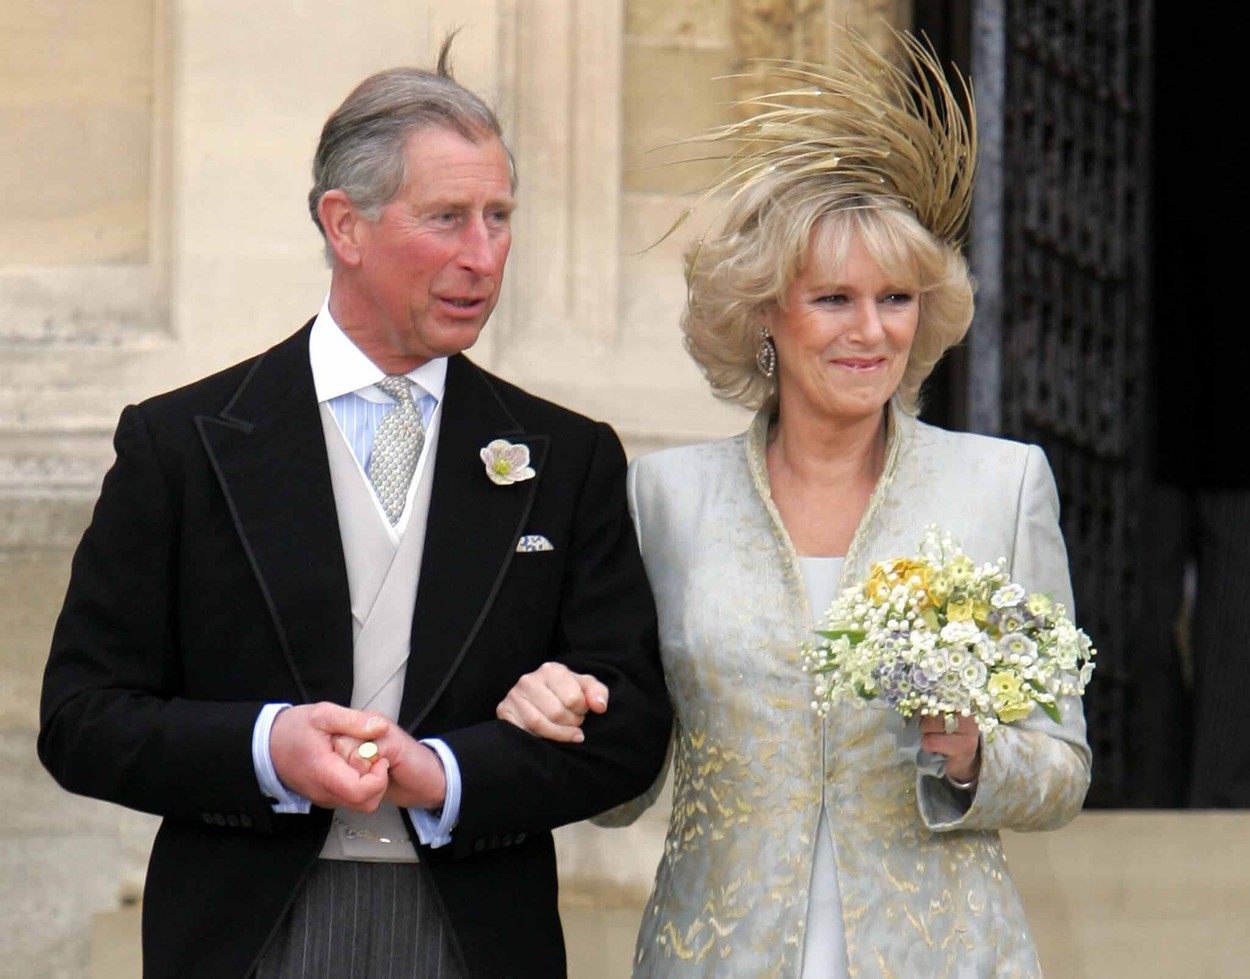 Britain's Prince Charles and Duchess of Cornwall leave St. George's Chapel in Windsor Castle, England following the Service of Prayer and Dedication following their marriage, April 9, 2005. Prince Charles and his long-term partner Camilla Parker Bowles, who became Her Royal Highness the Duchess of Cornwall.  Date: 09.04.2005., Image: 22417298, License: Rights-managed, Restrictions: - NO UK USE - For queries call UPPA + 44 (0)20 7421 6000, Model Release: no, Credit line: © UPPA/Photoshot / Avalon Editorial / Profimedia